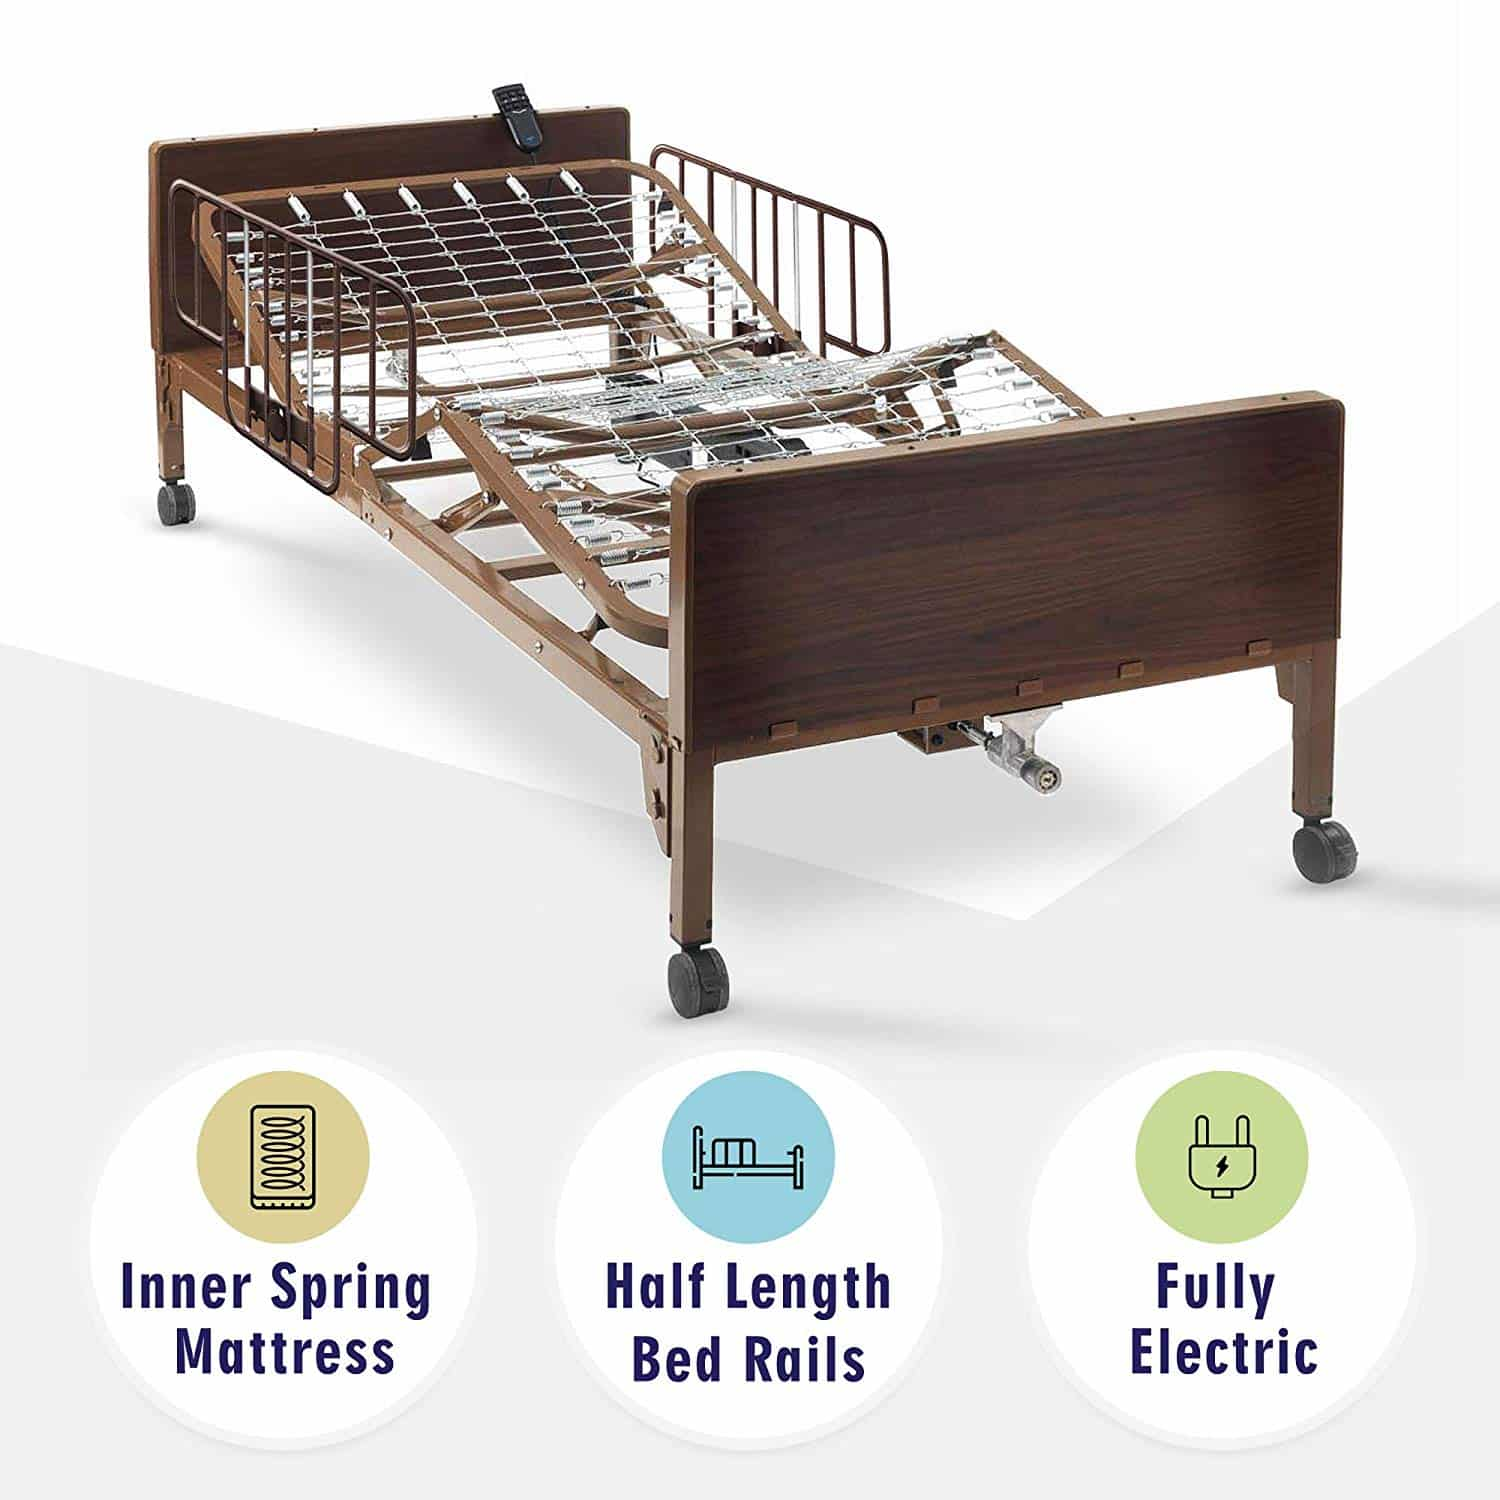 Full Electric Hospital Bed with innerspring Mattress and Half Rails